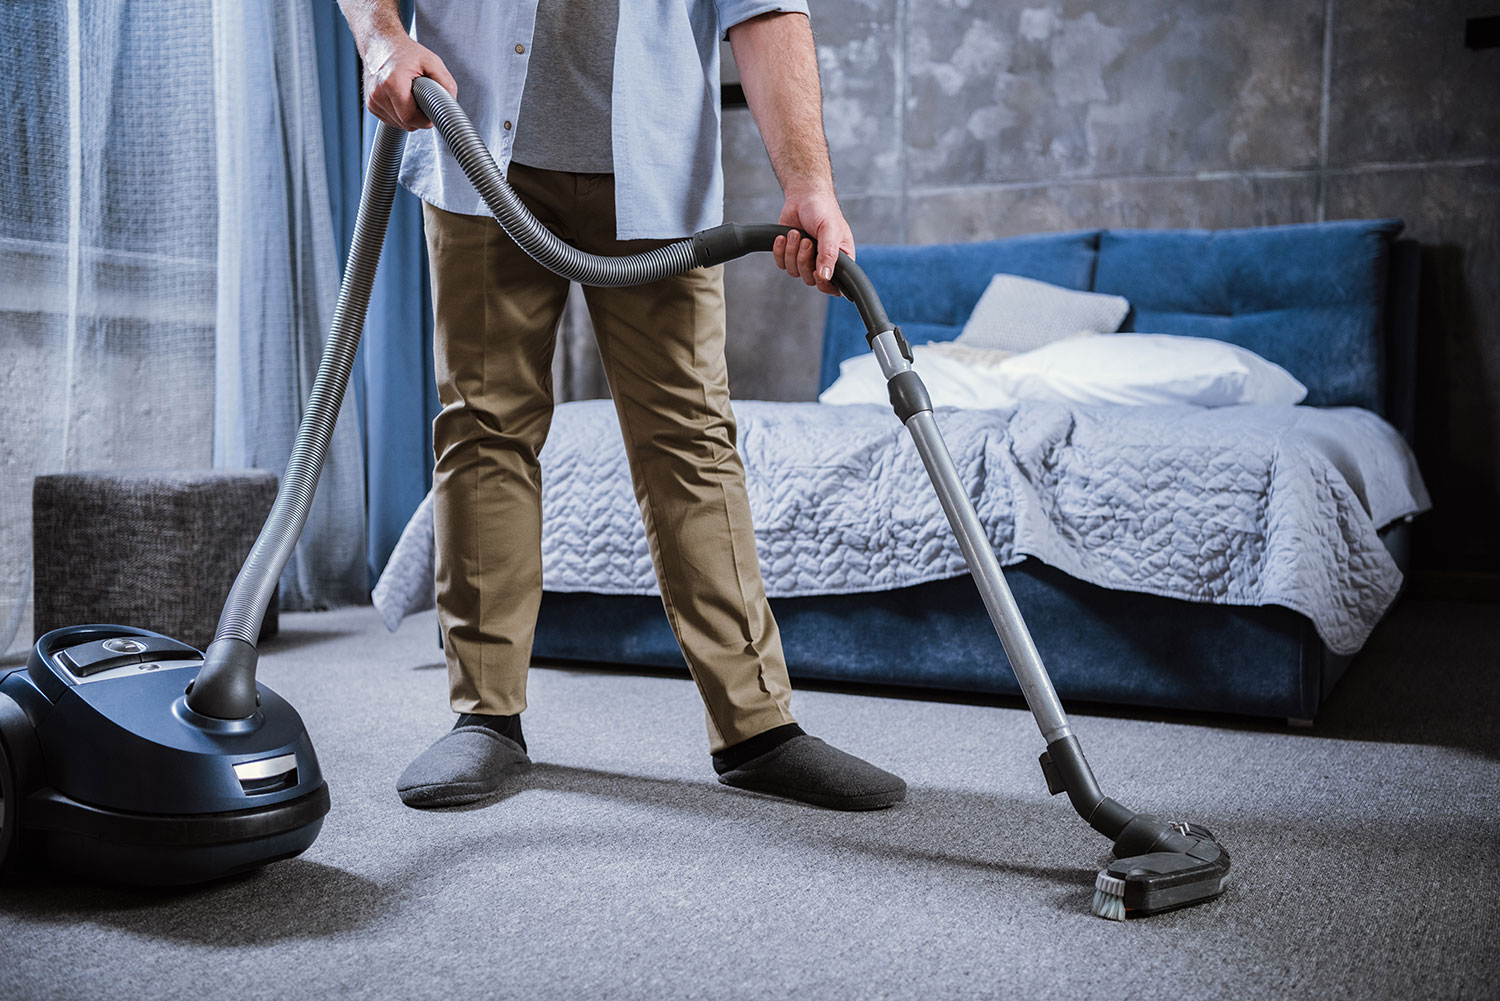 man-with-vacuum-cleaner-cleaning